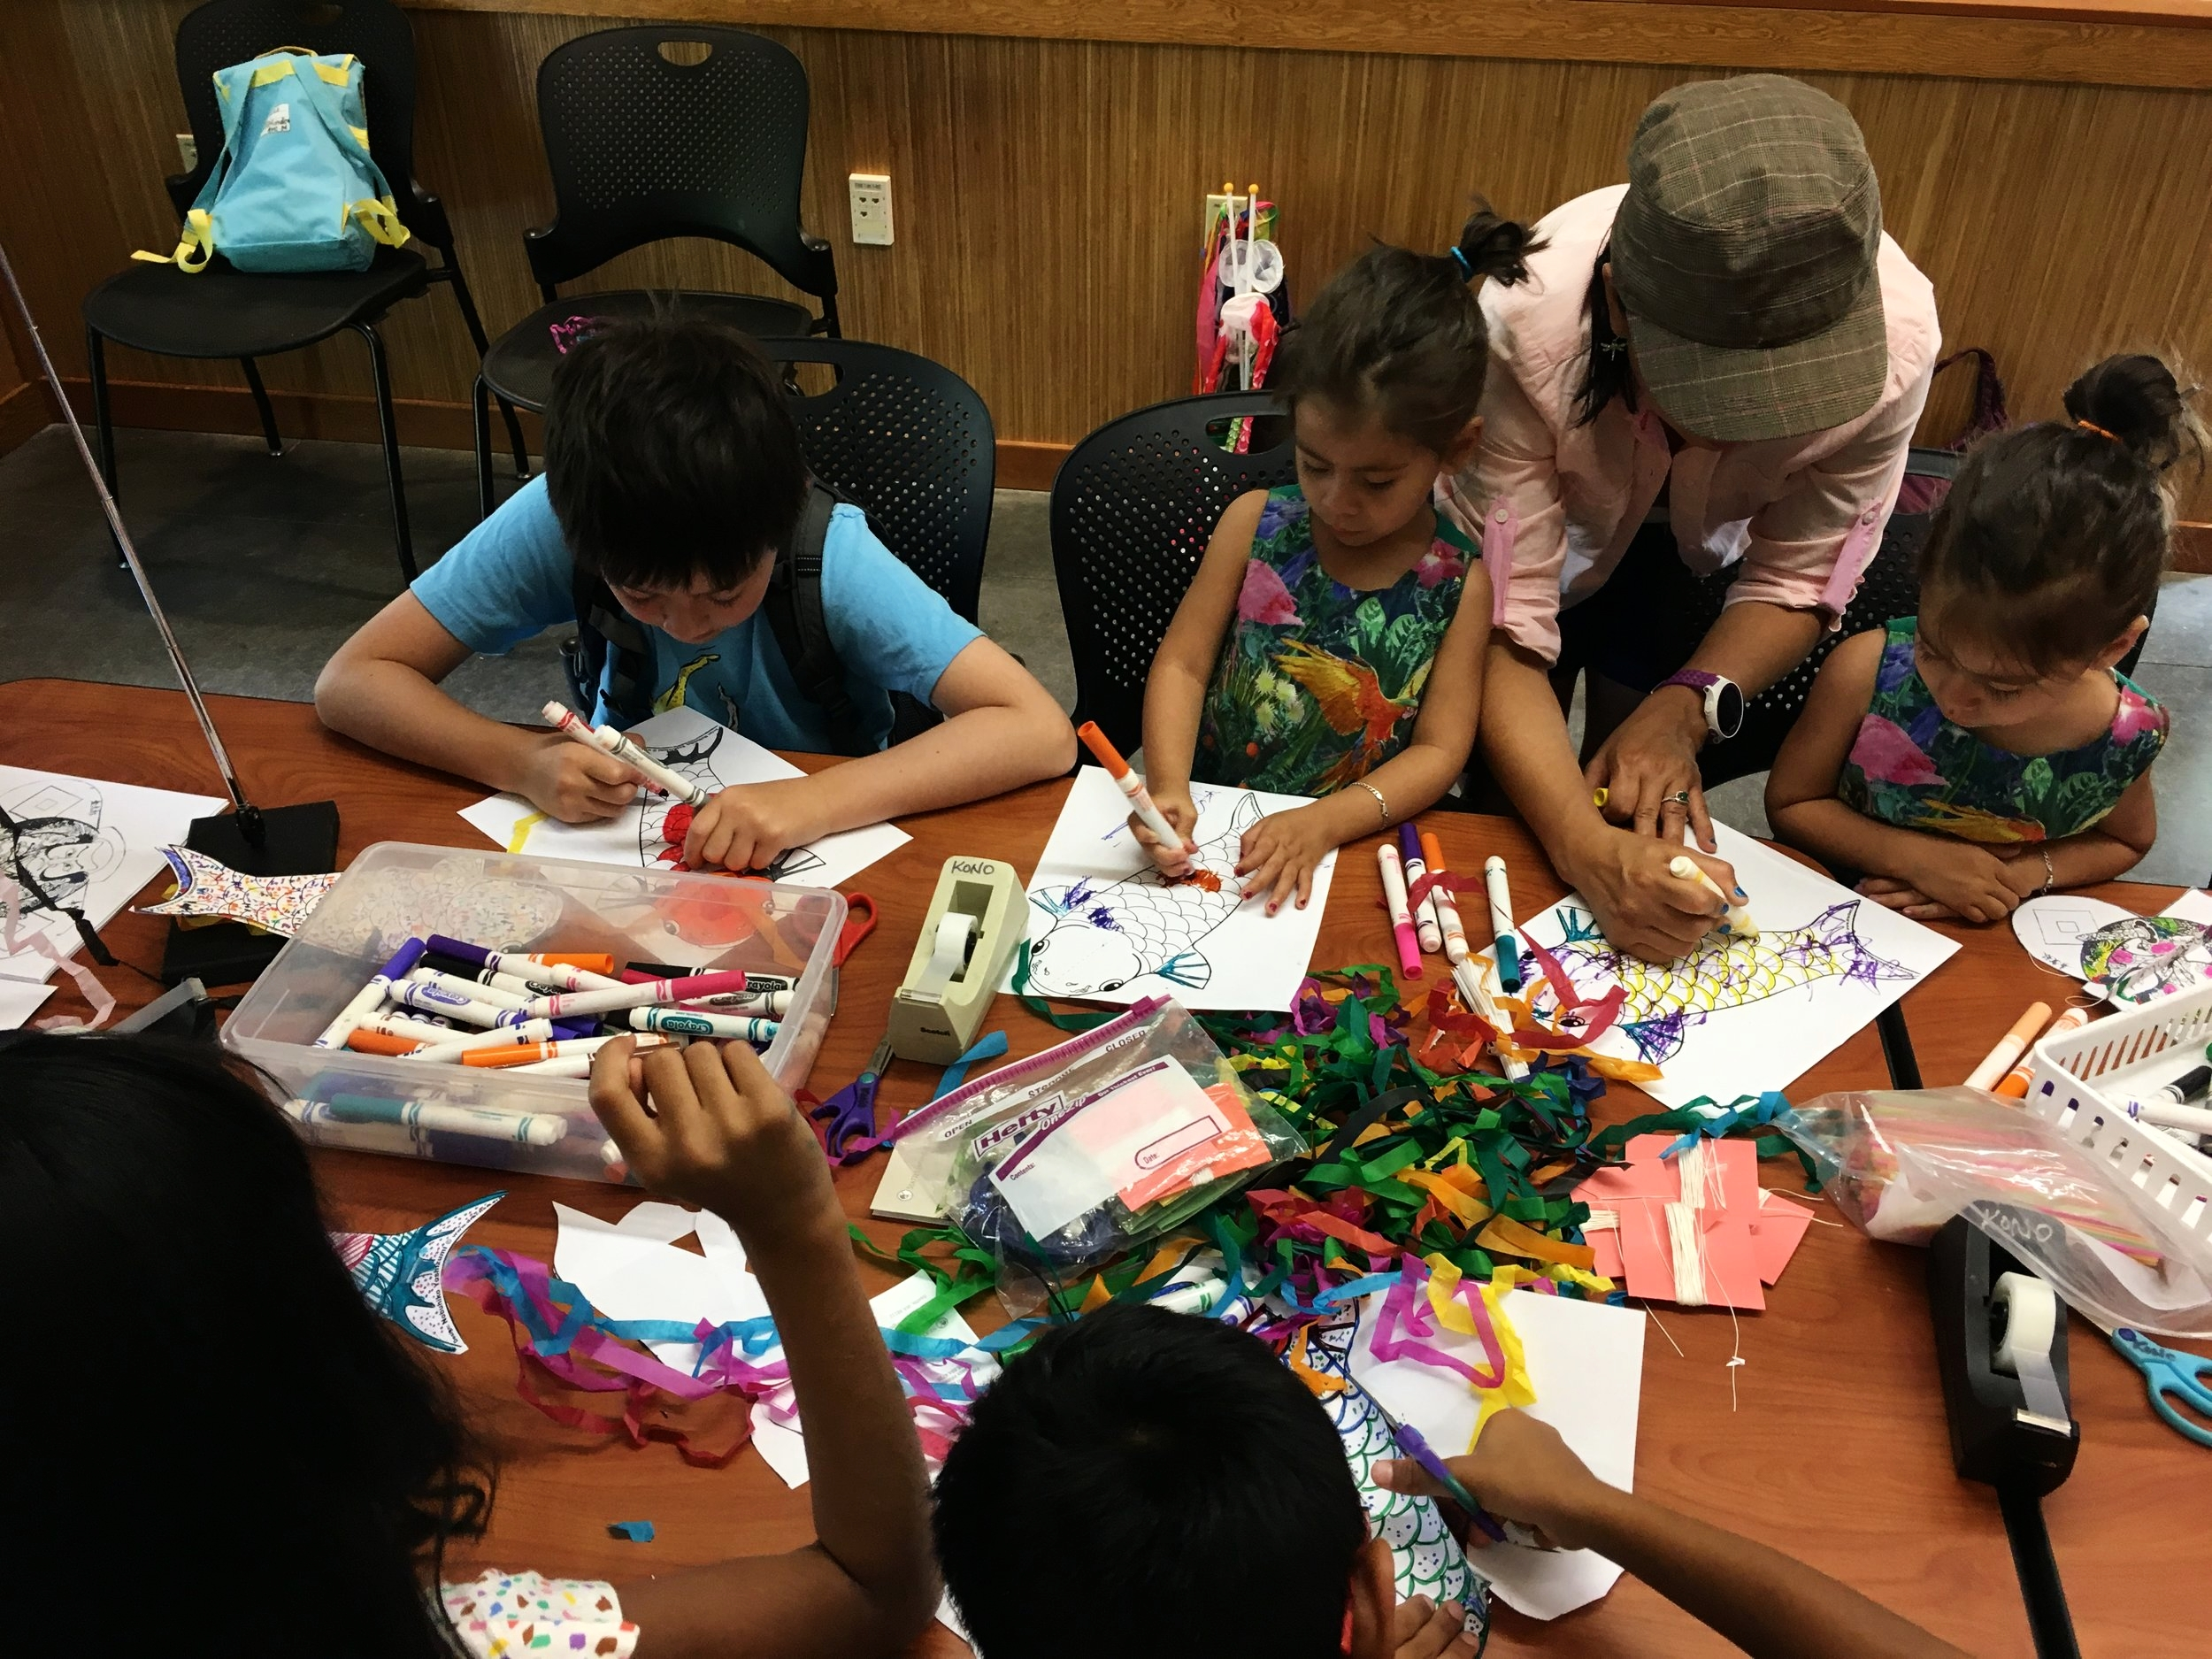 Kite-making workshop from the 2017 season. We're pleased to share this experience with our visitors again for the August Family Saturday this year.